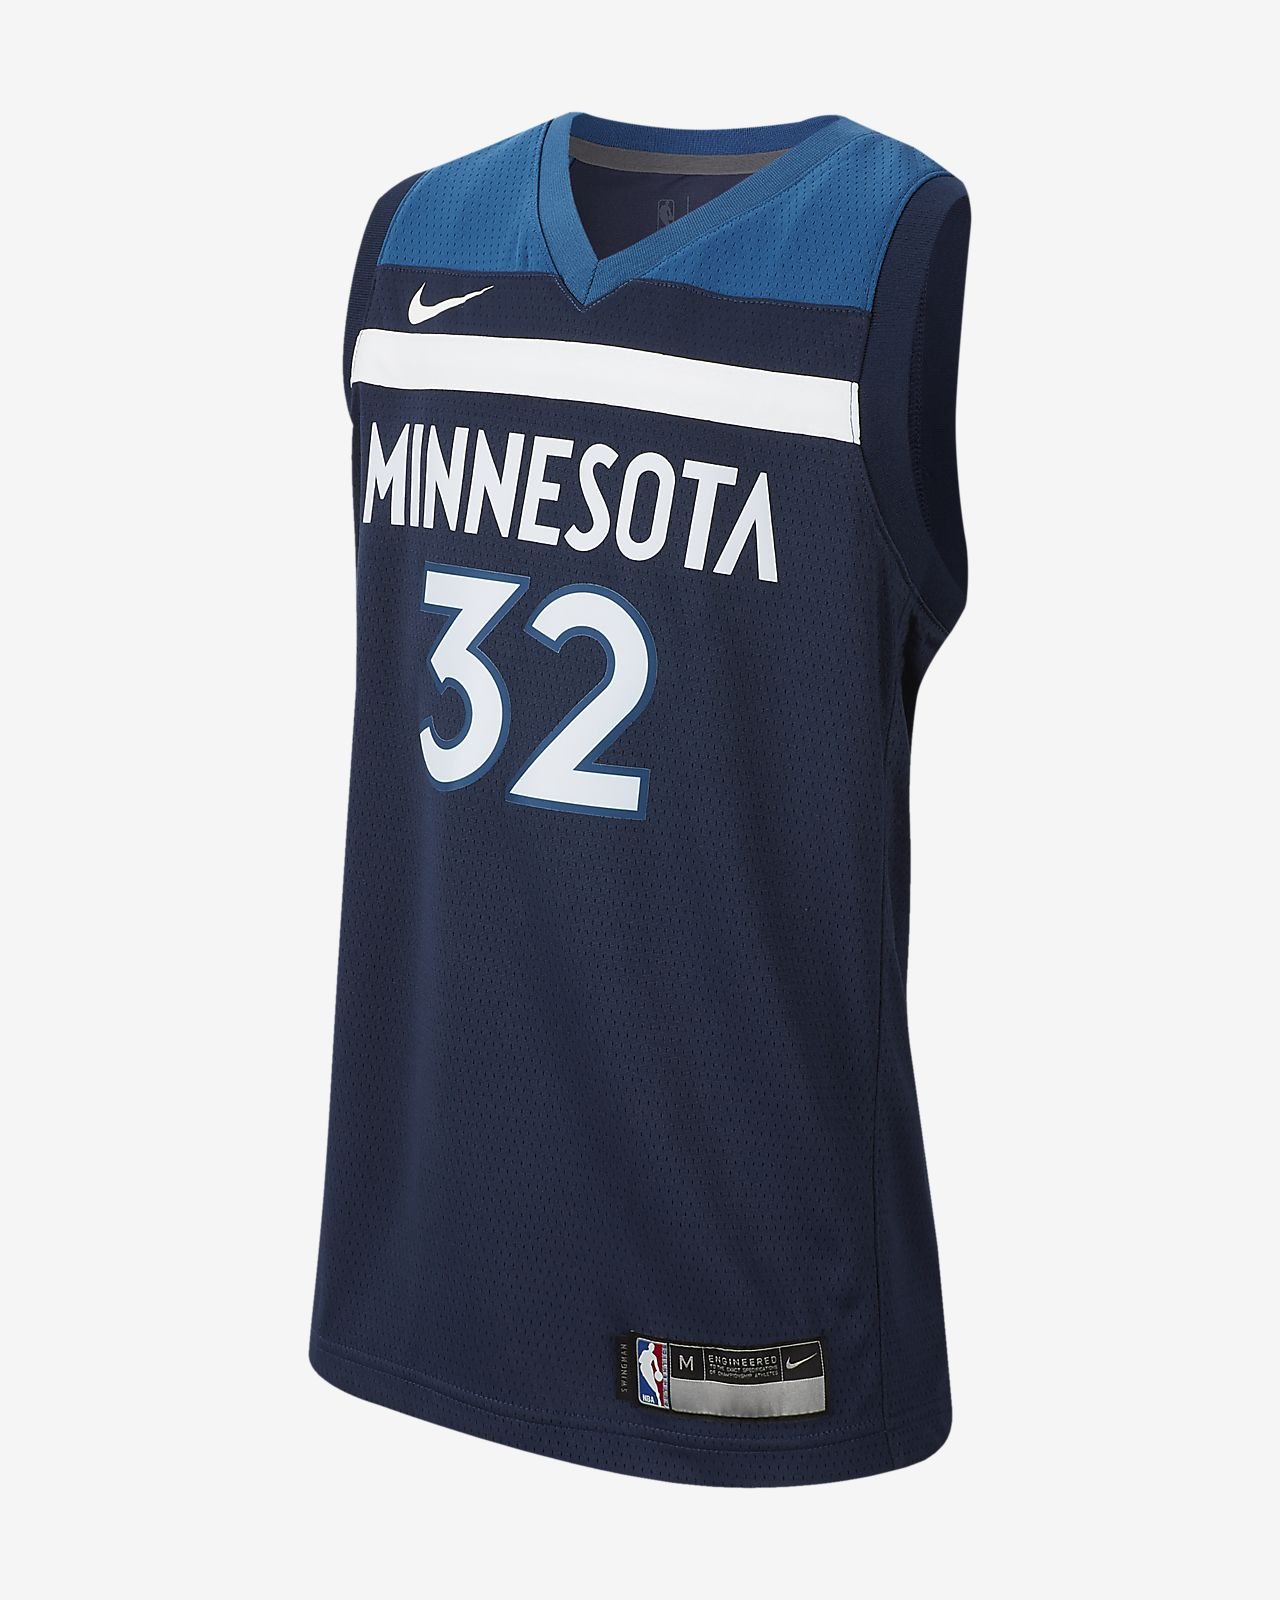 detailed look 1fa90 98c40 Karl-Anthony Towns Icon Edition Swingman (Minnesota Timberwolves) Big Kids'  Nike NBA Jersey